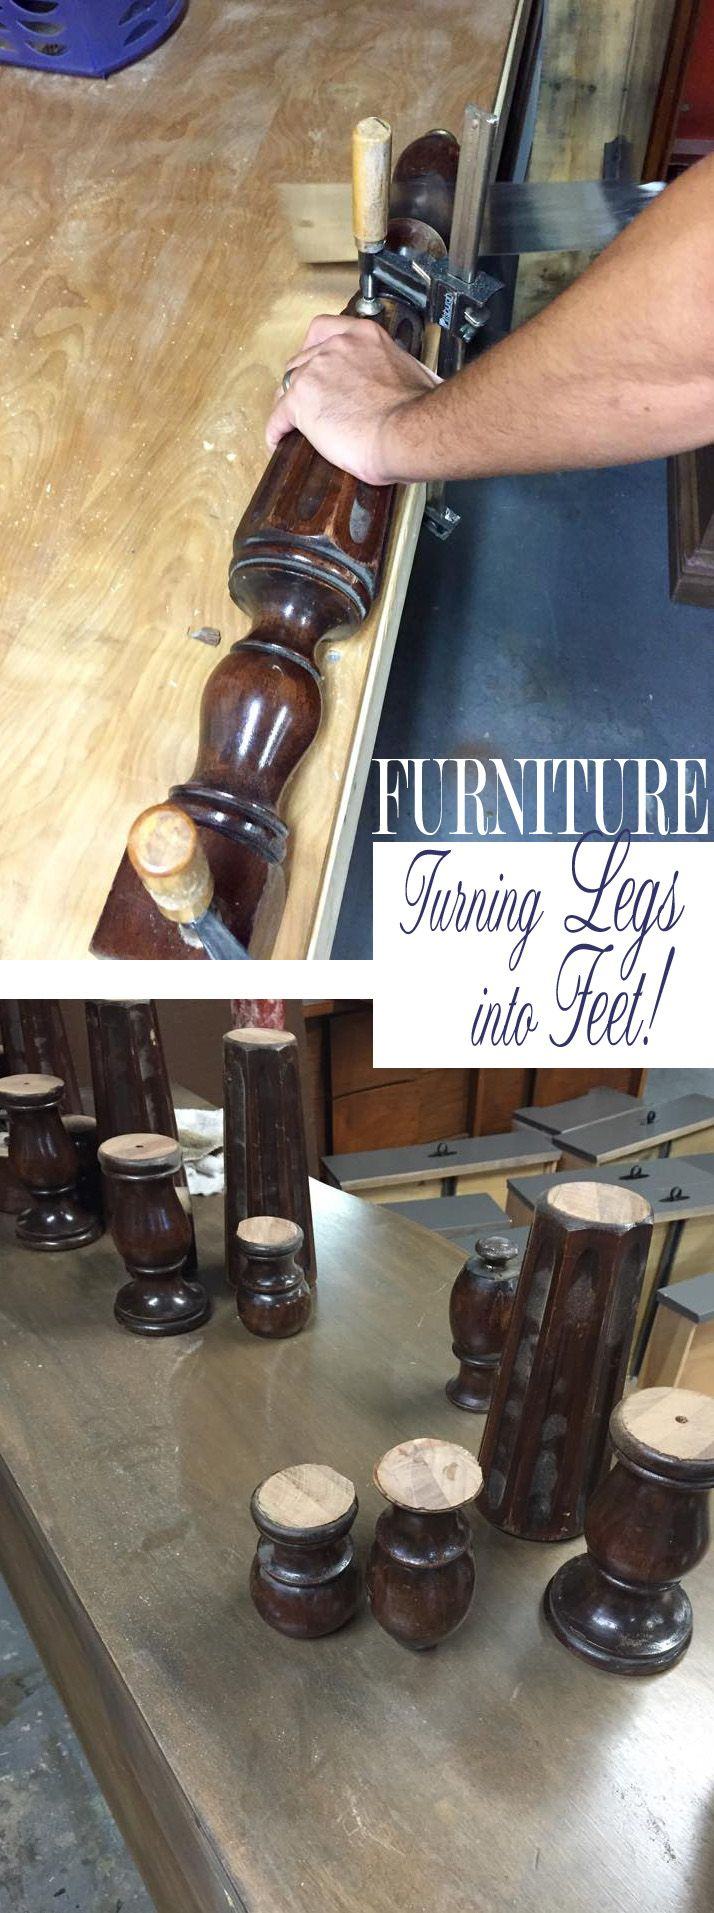 ^ 1000+ ideas about Furniture Legs on Pinterest Mid century modern ...